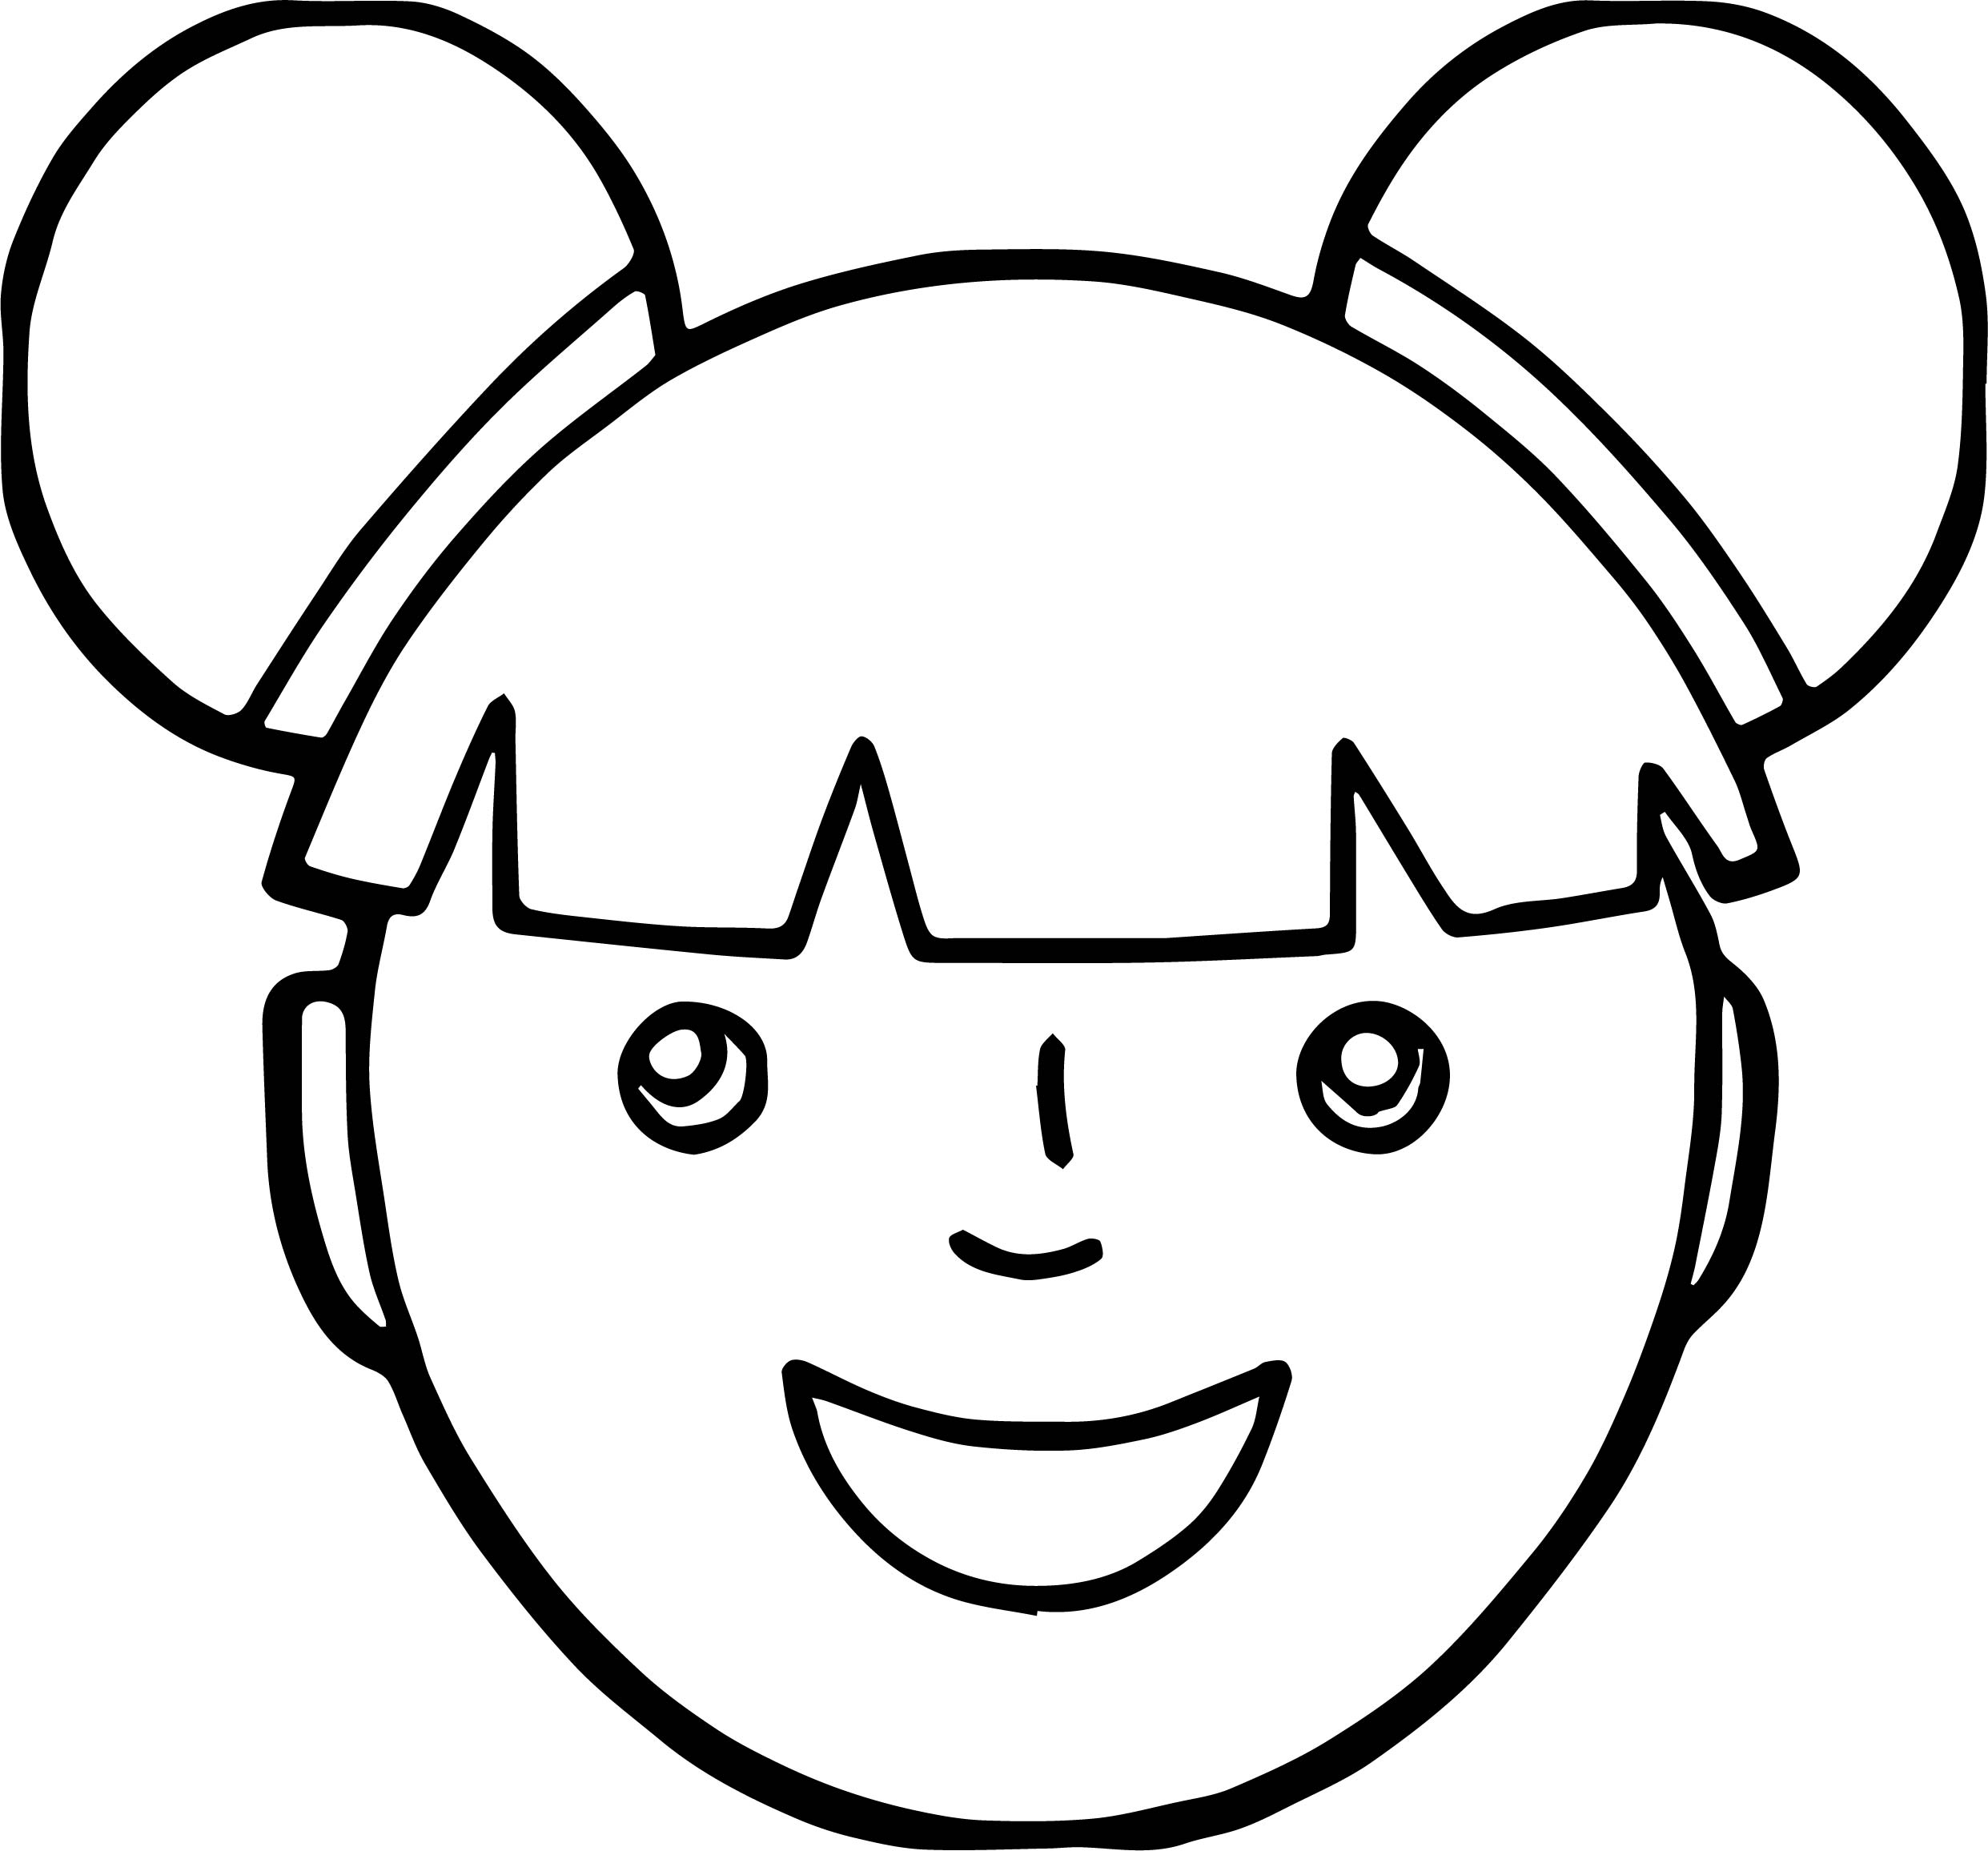 2483x2312 coloring pages smiling face coloring page smiling face coloring